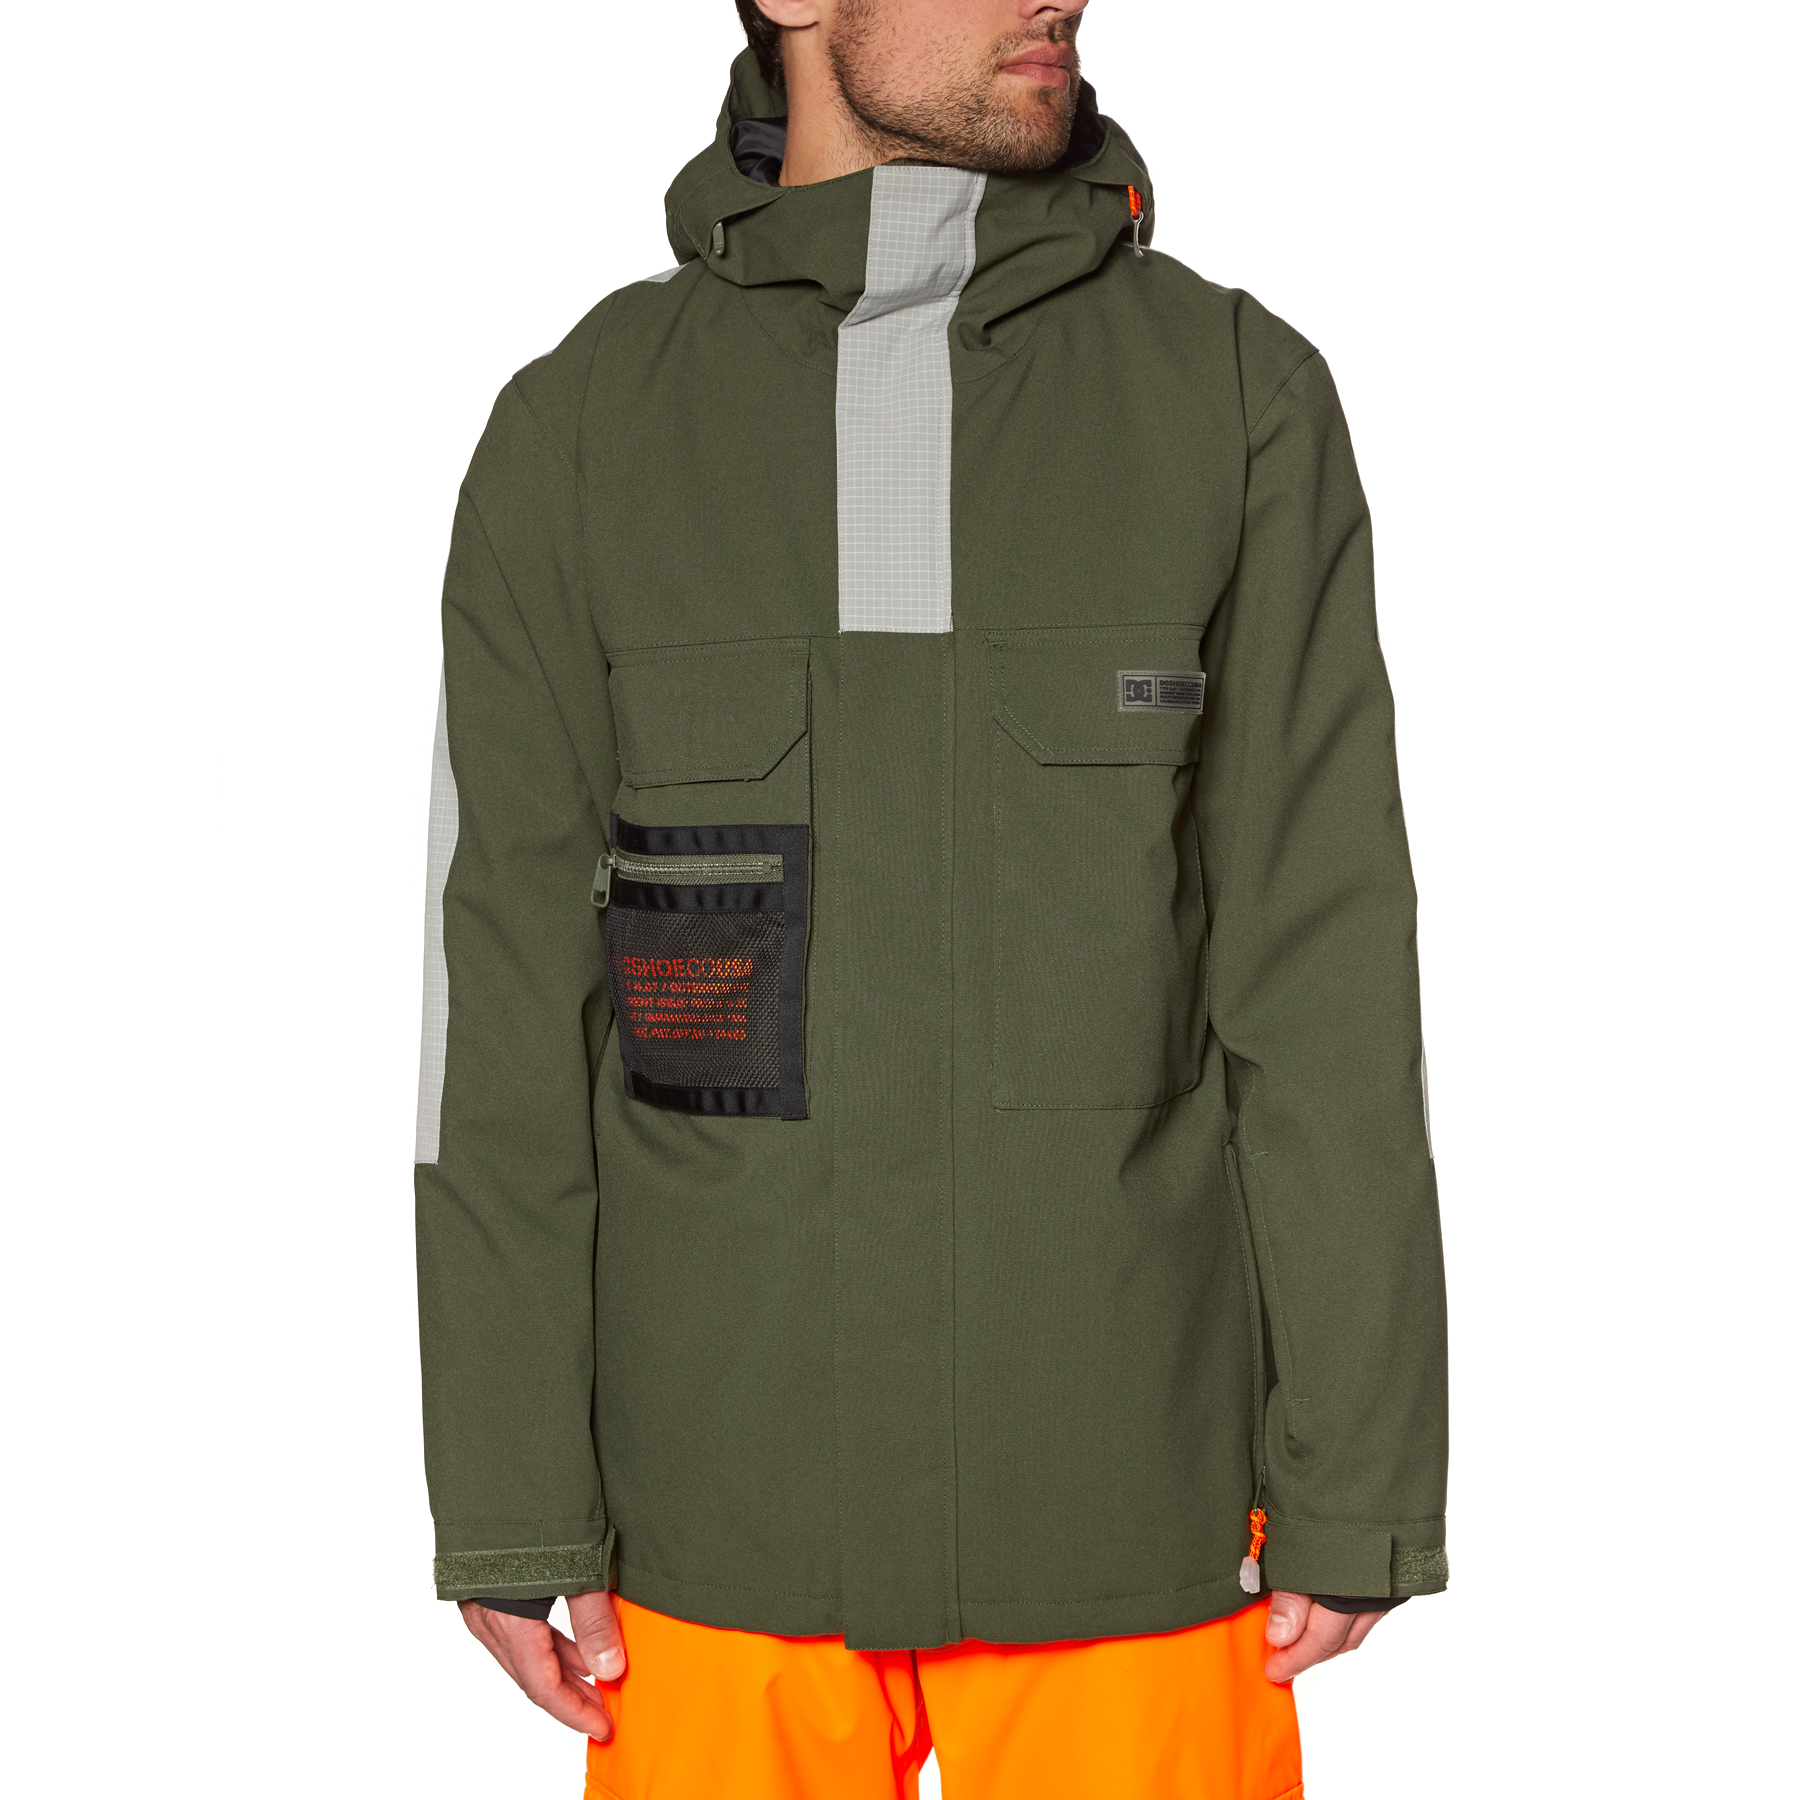 Snow Jackets available from Surfdome Australia